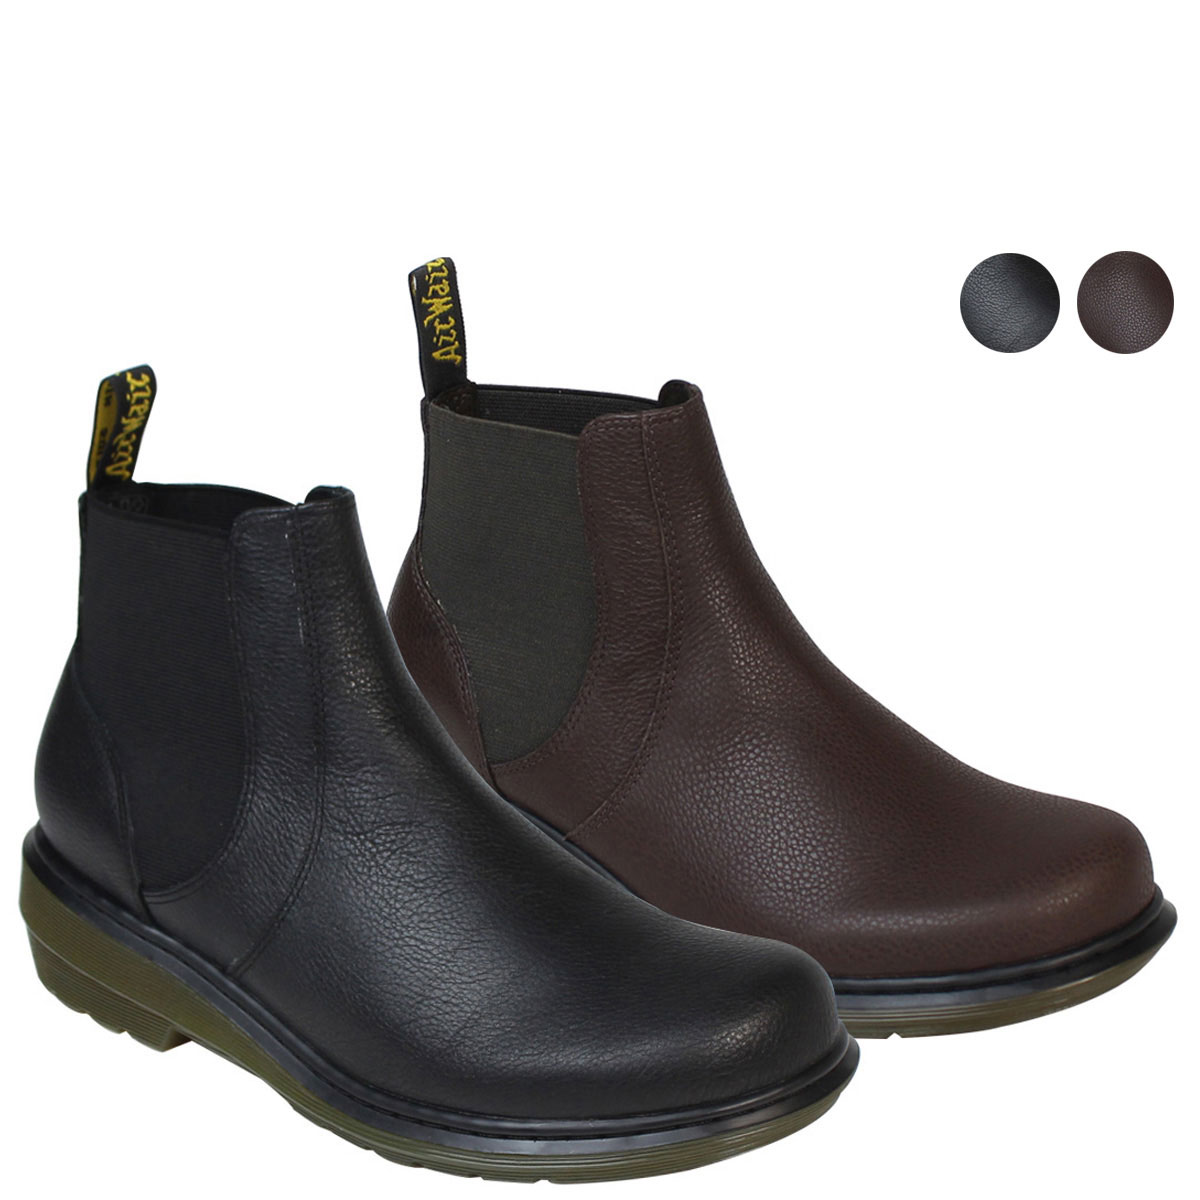 Whats up Sports: Dr.Martens Martens